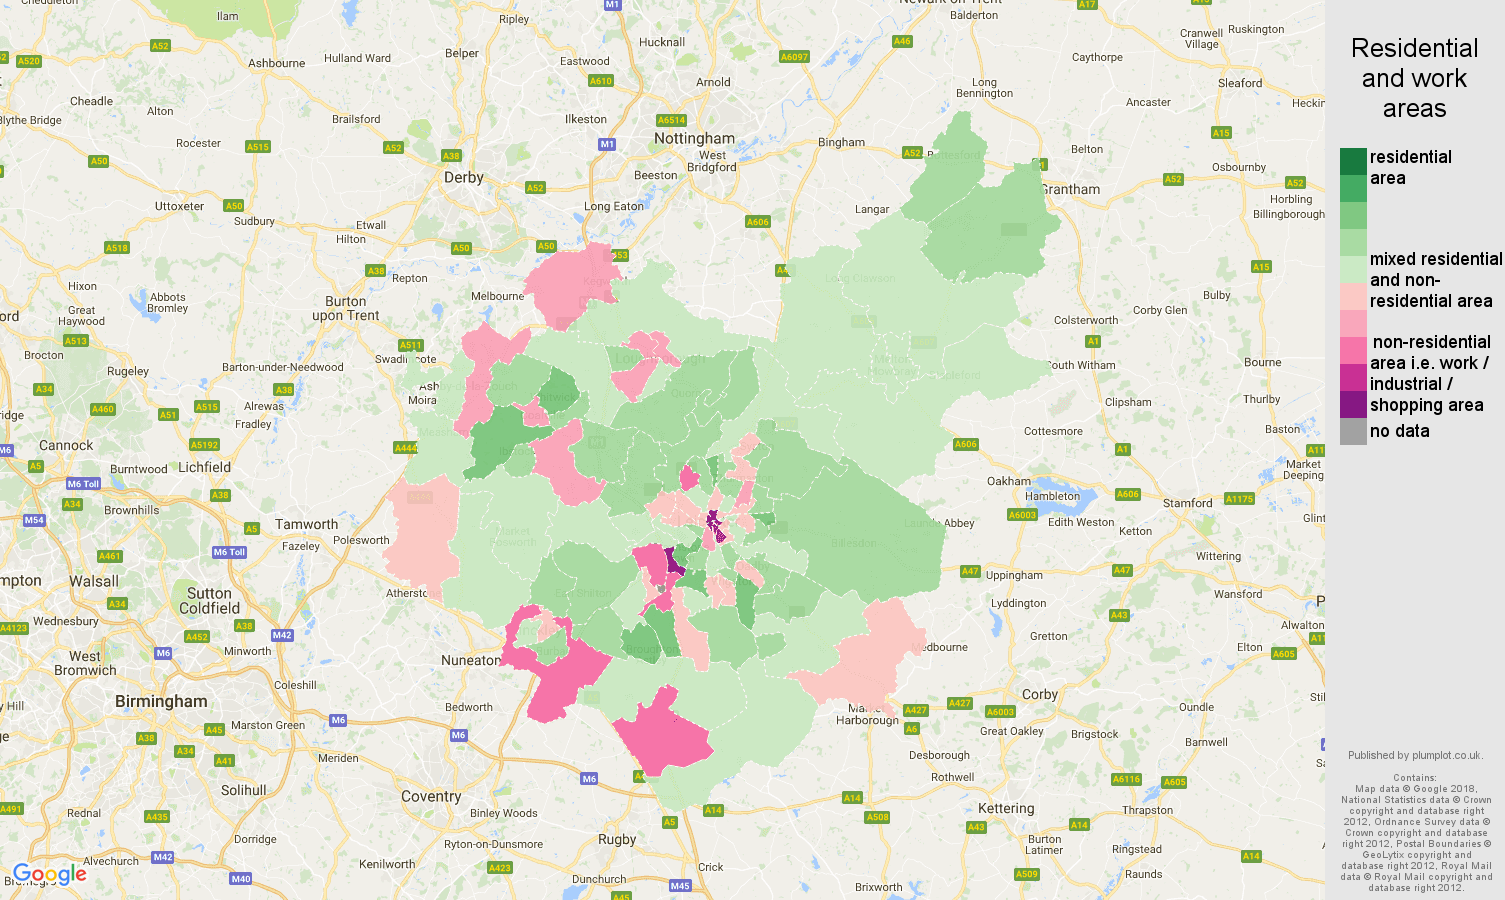 Leicestershire residential areas map